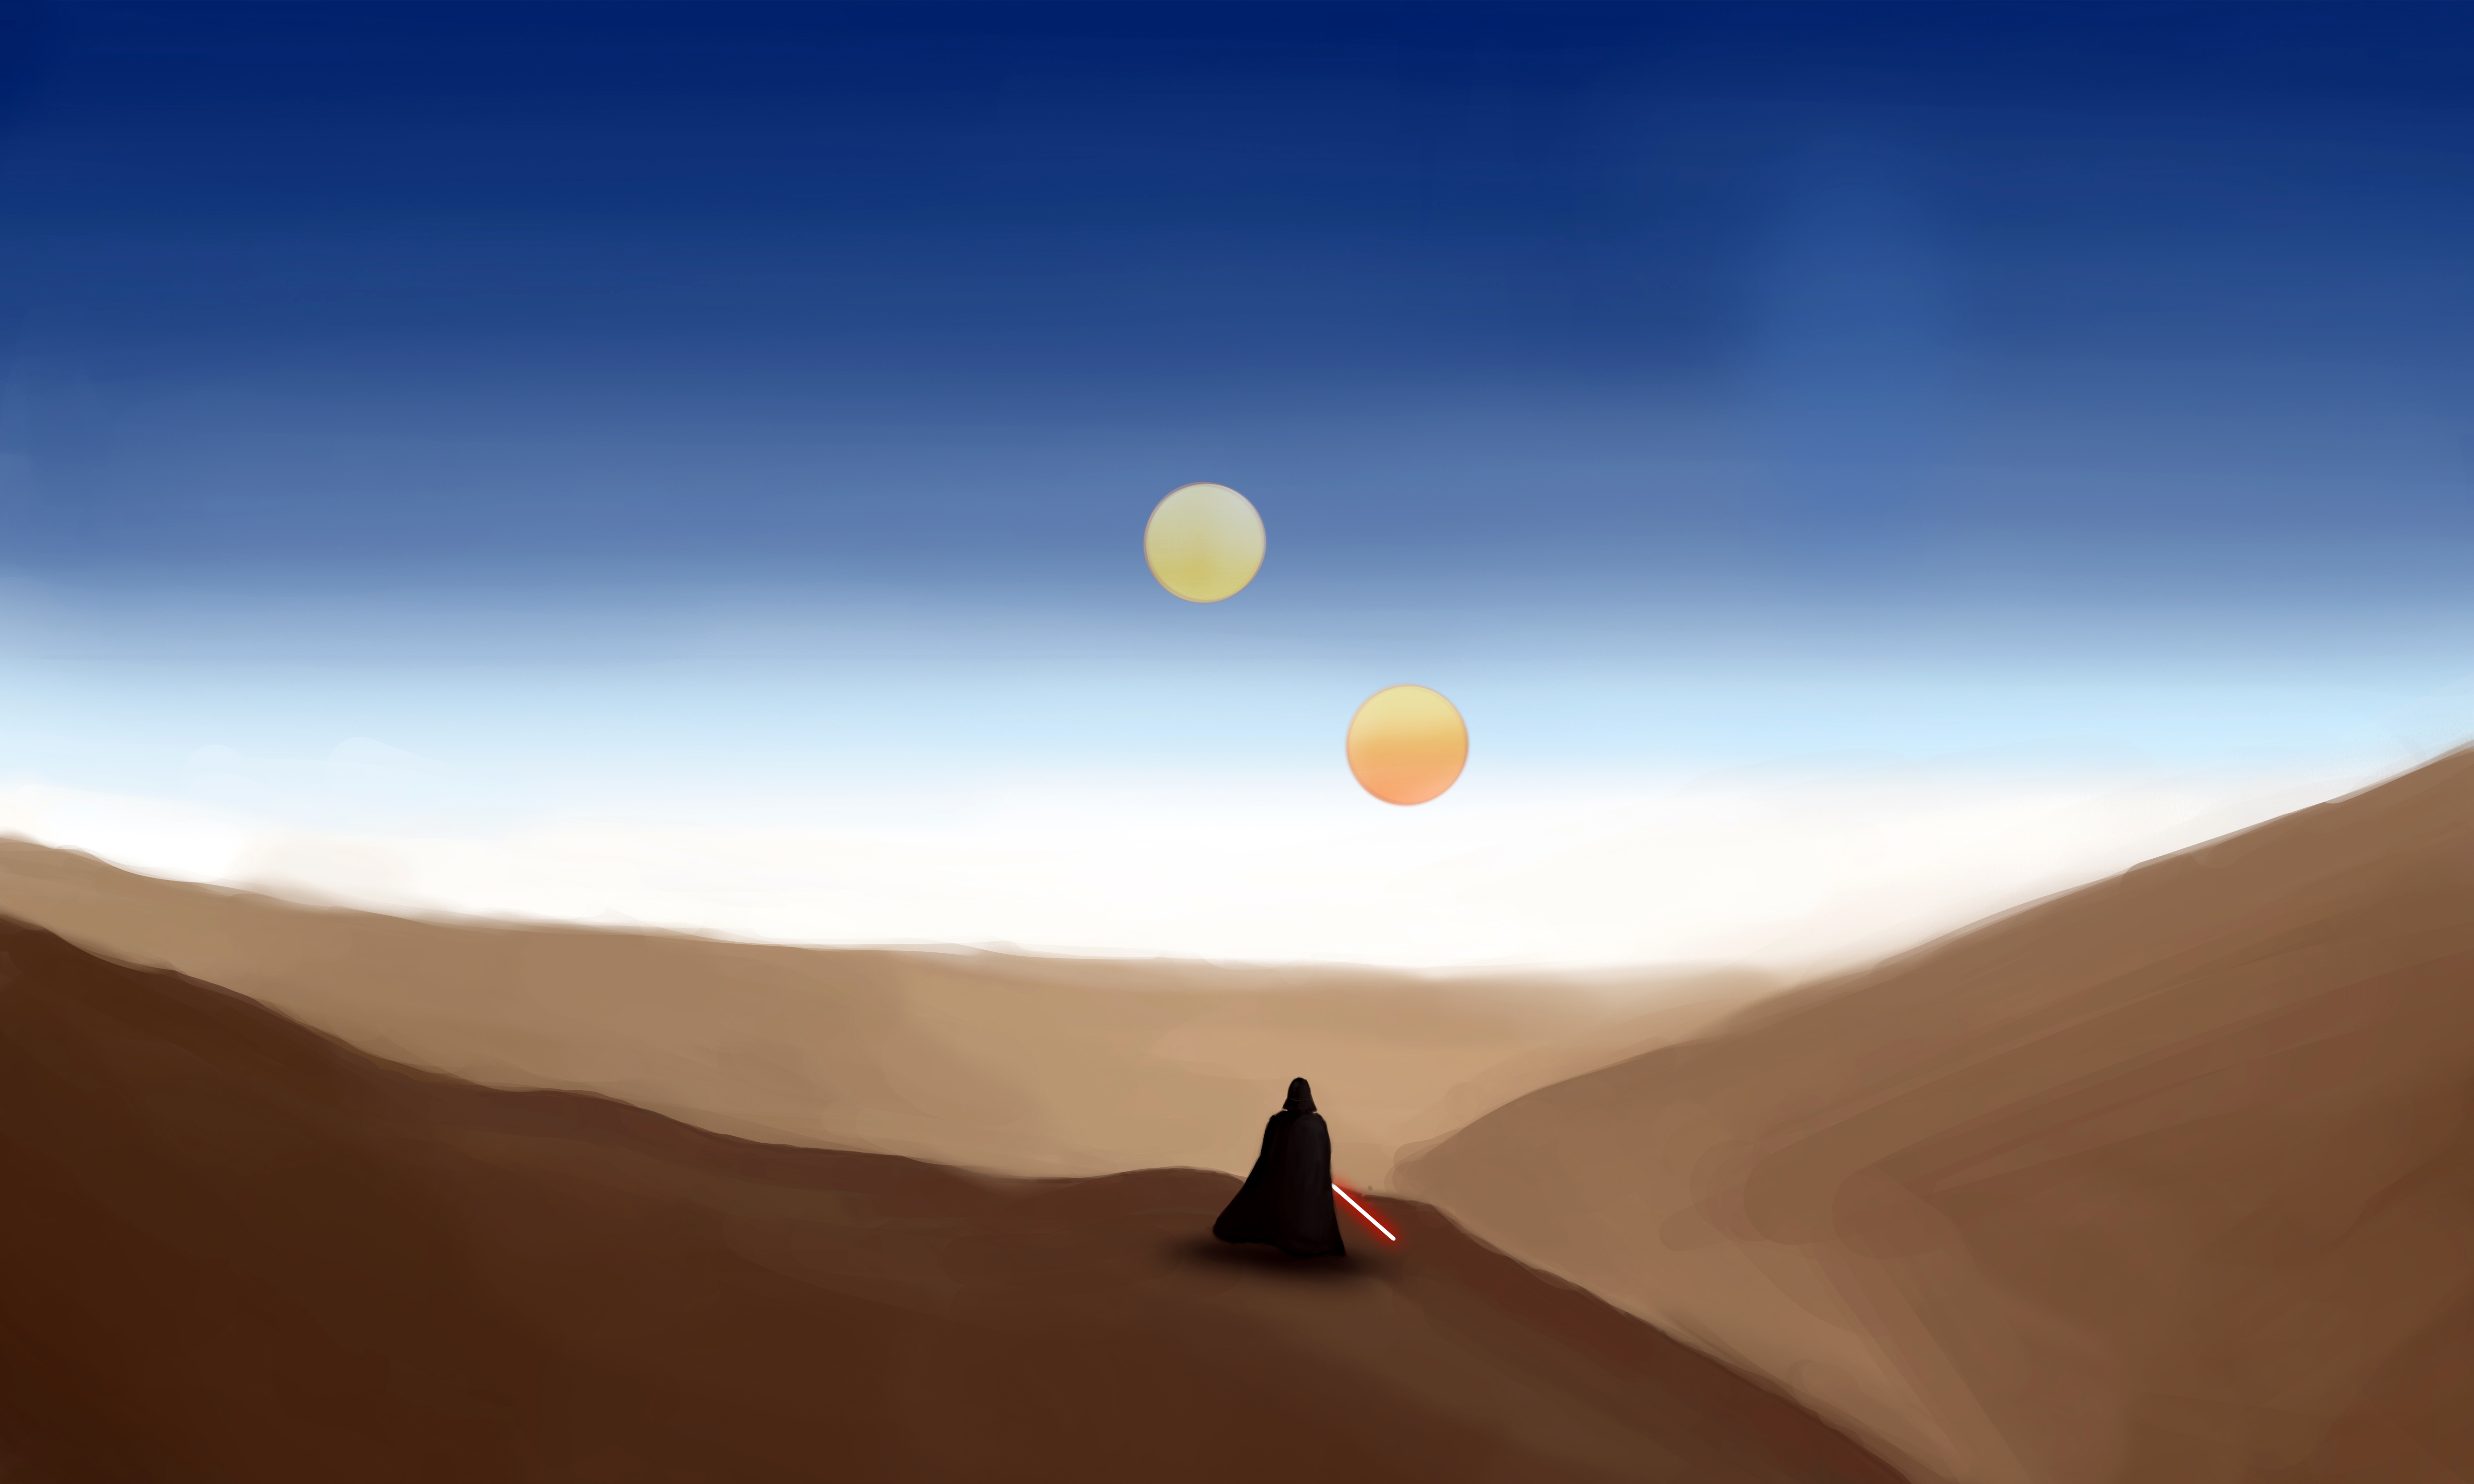 Star Wars Tatooine On Pinterest Desktop Background